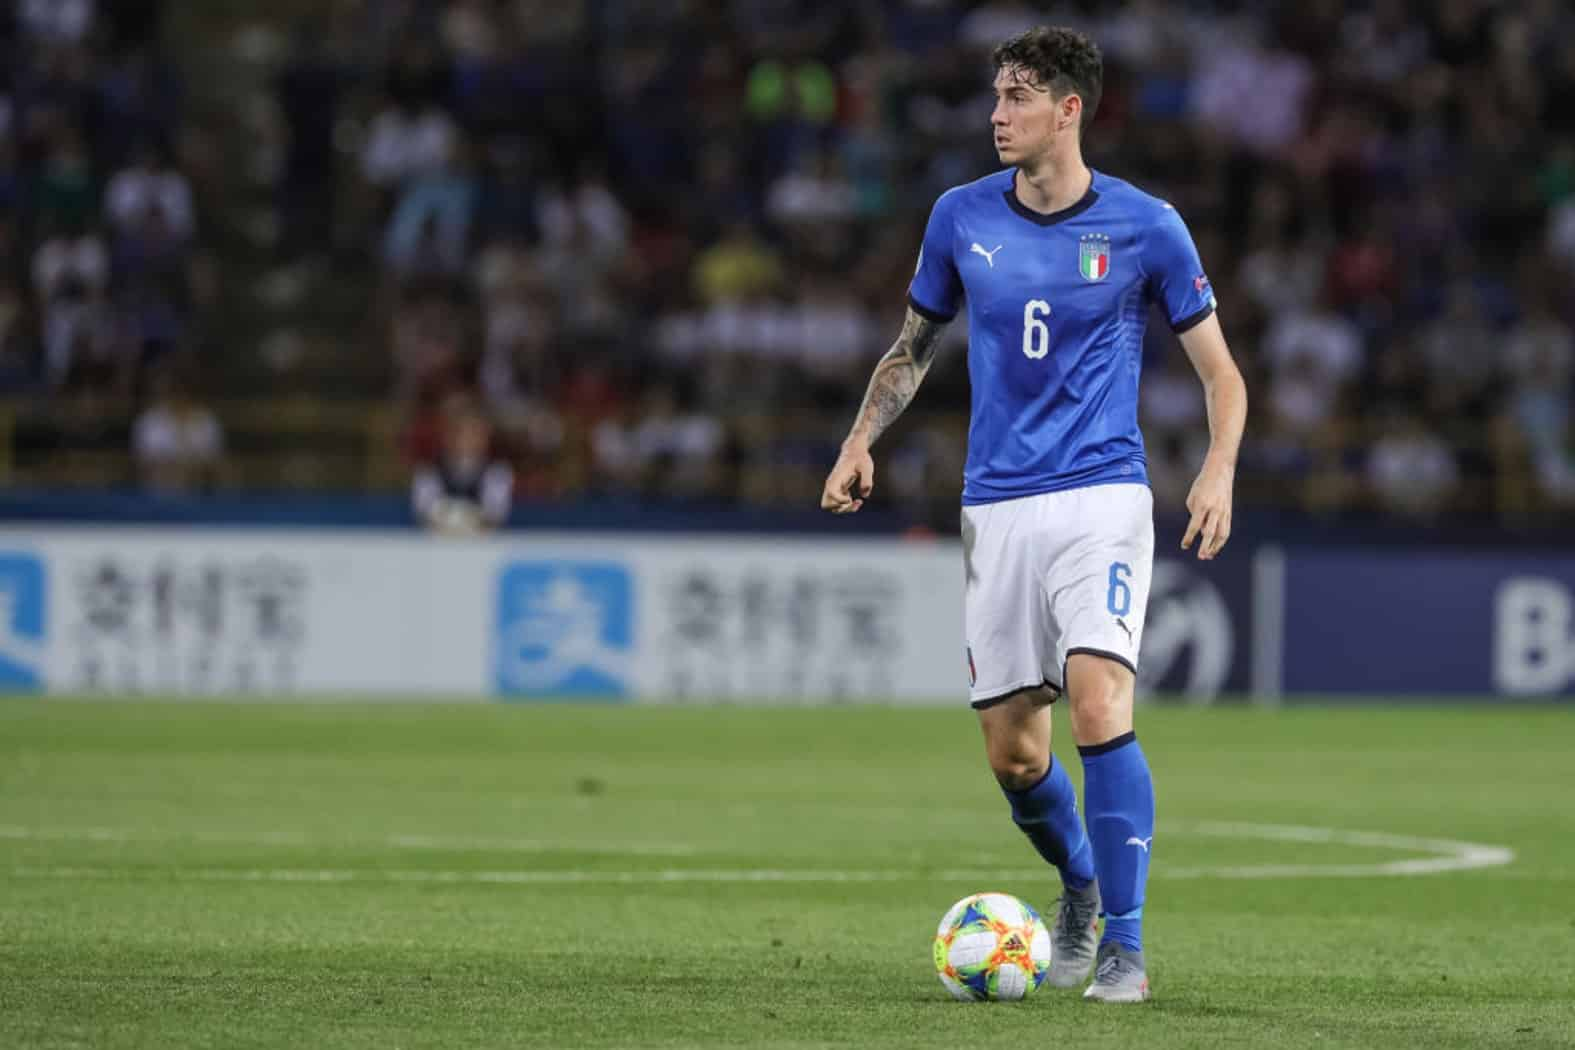 Alessandro Bastoni of Italy U21 during the UEFA UNDER21 Championship match between Italy and Poland at Renato Dall'Ara on June 19, 2019 in Bologna, Italy. (Photo by Emmanuele Ciancaglini/NurPhoto via Getty Images)